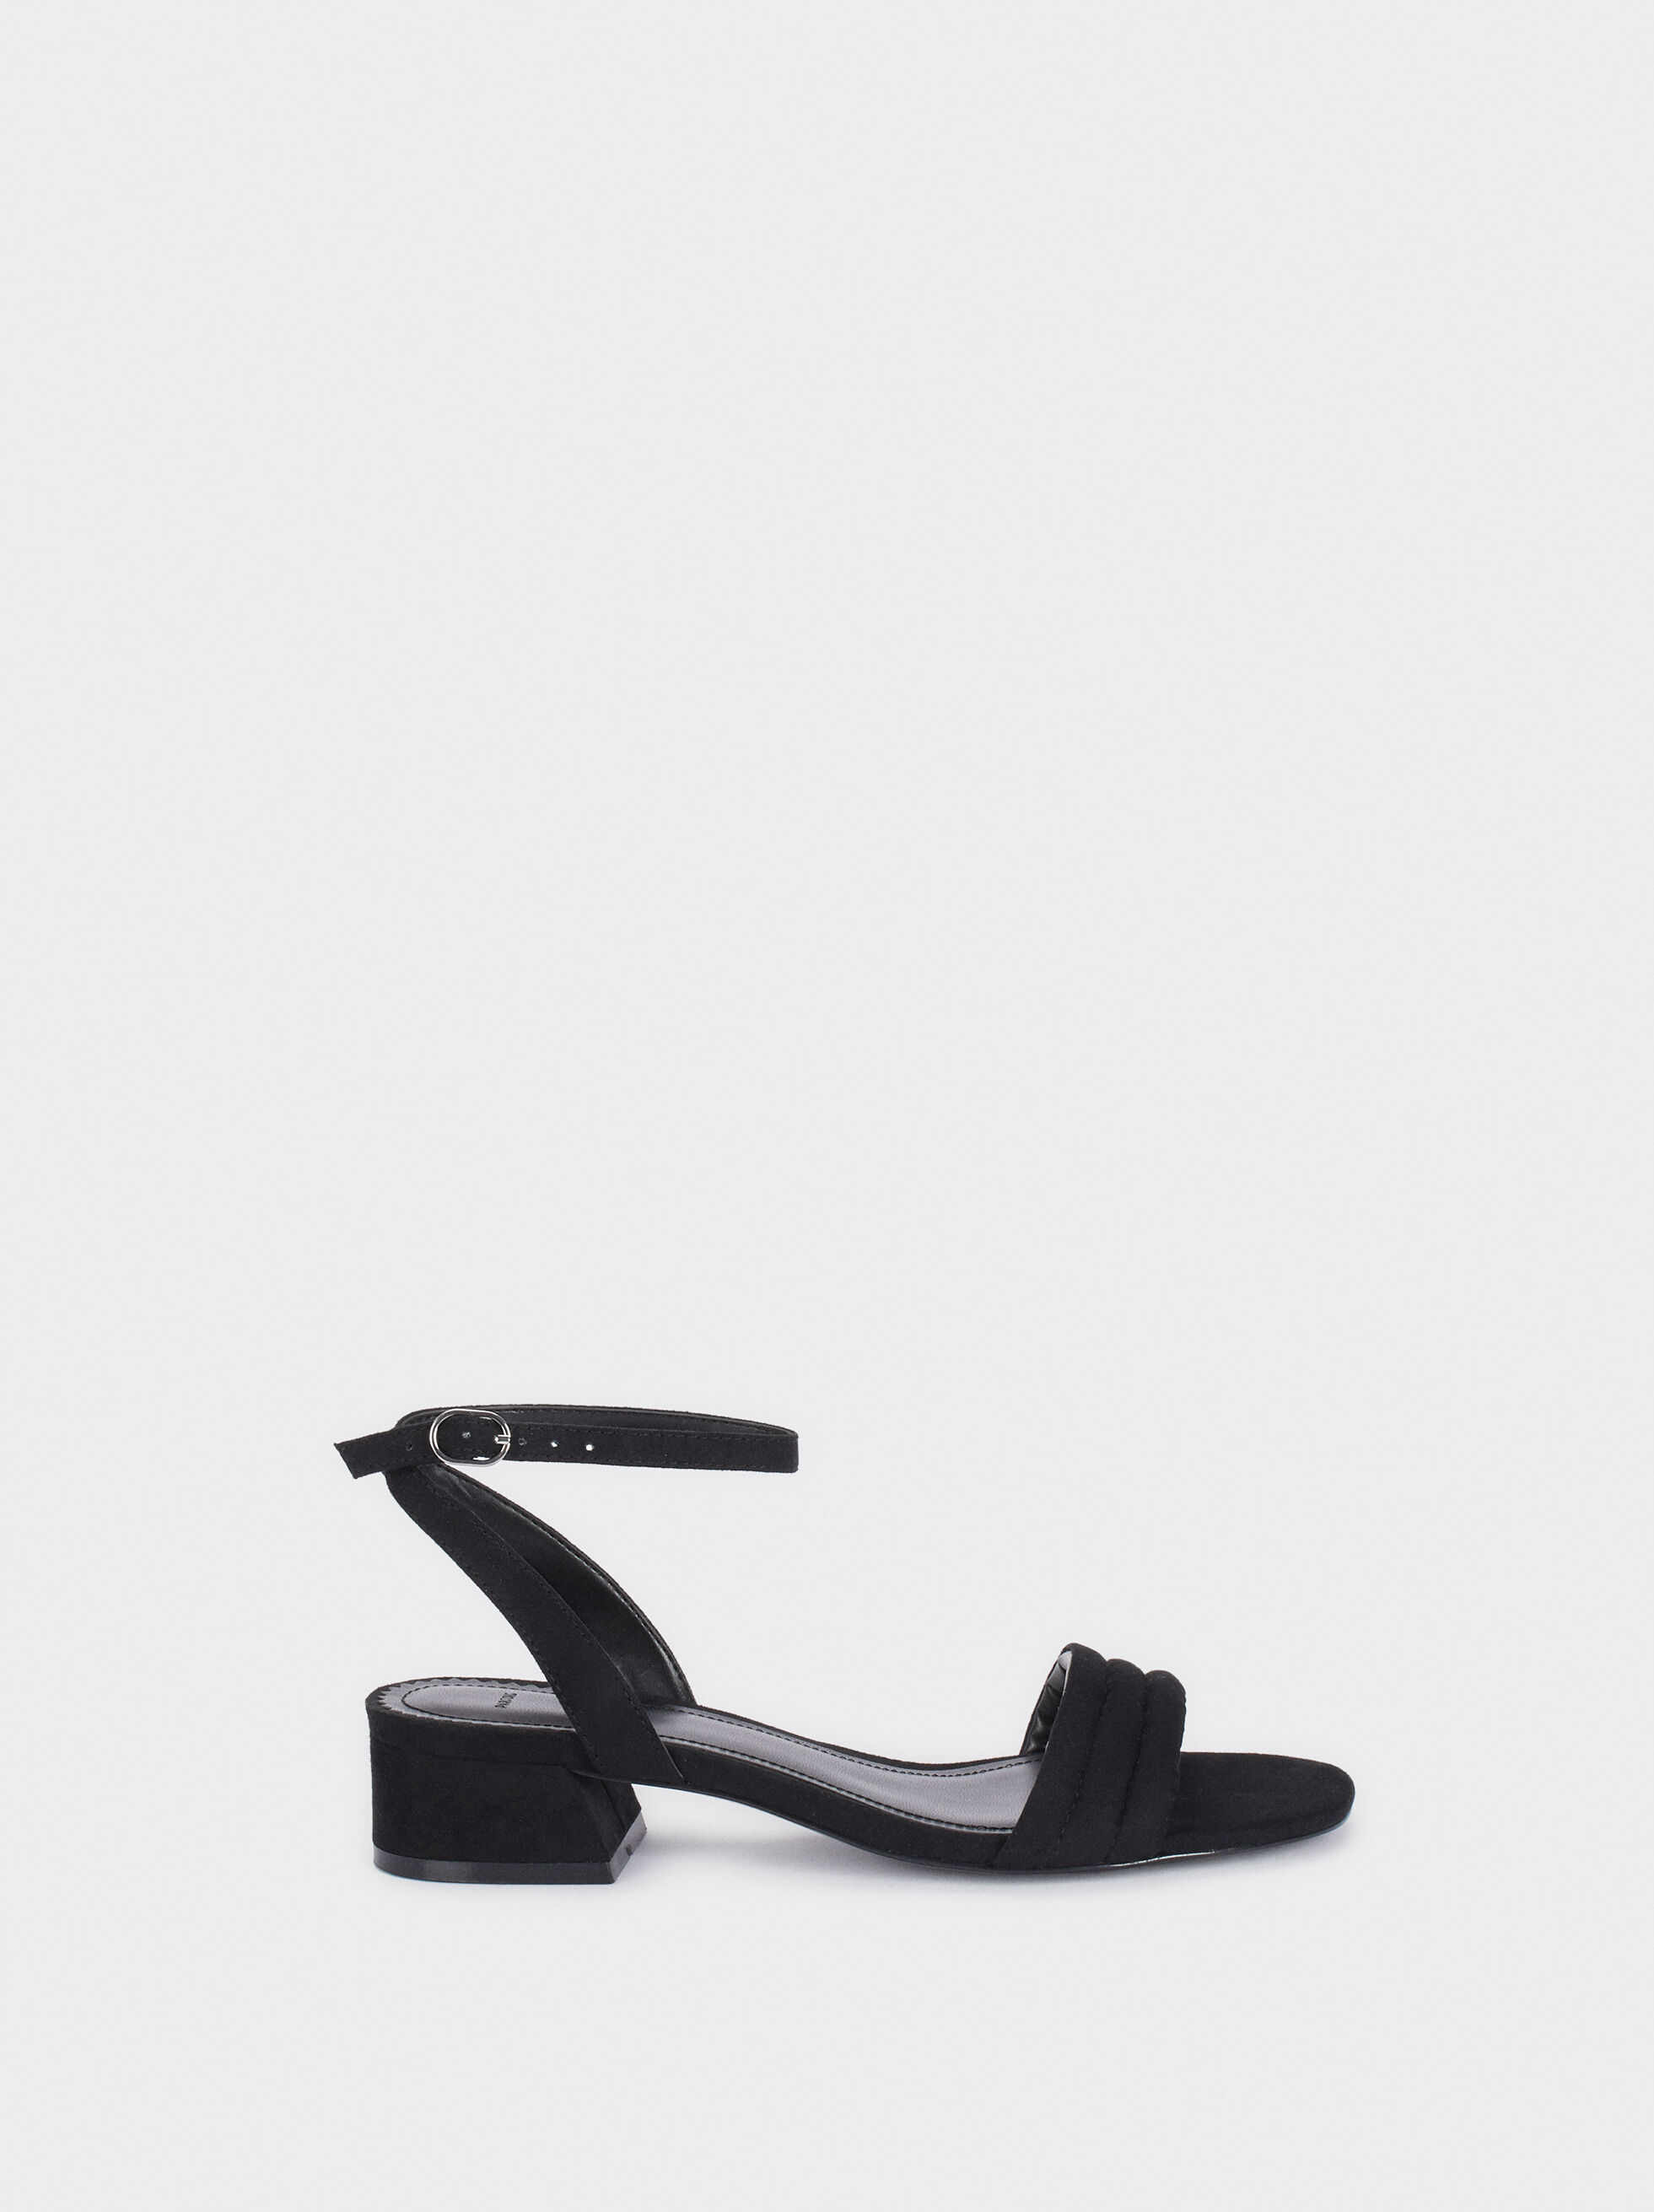 Low-Heel Sandals With Straps, , hi-res